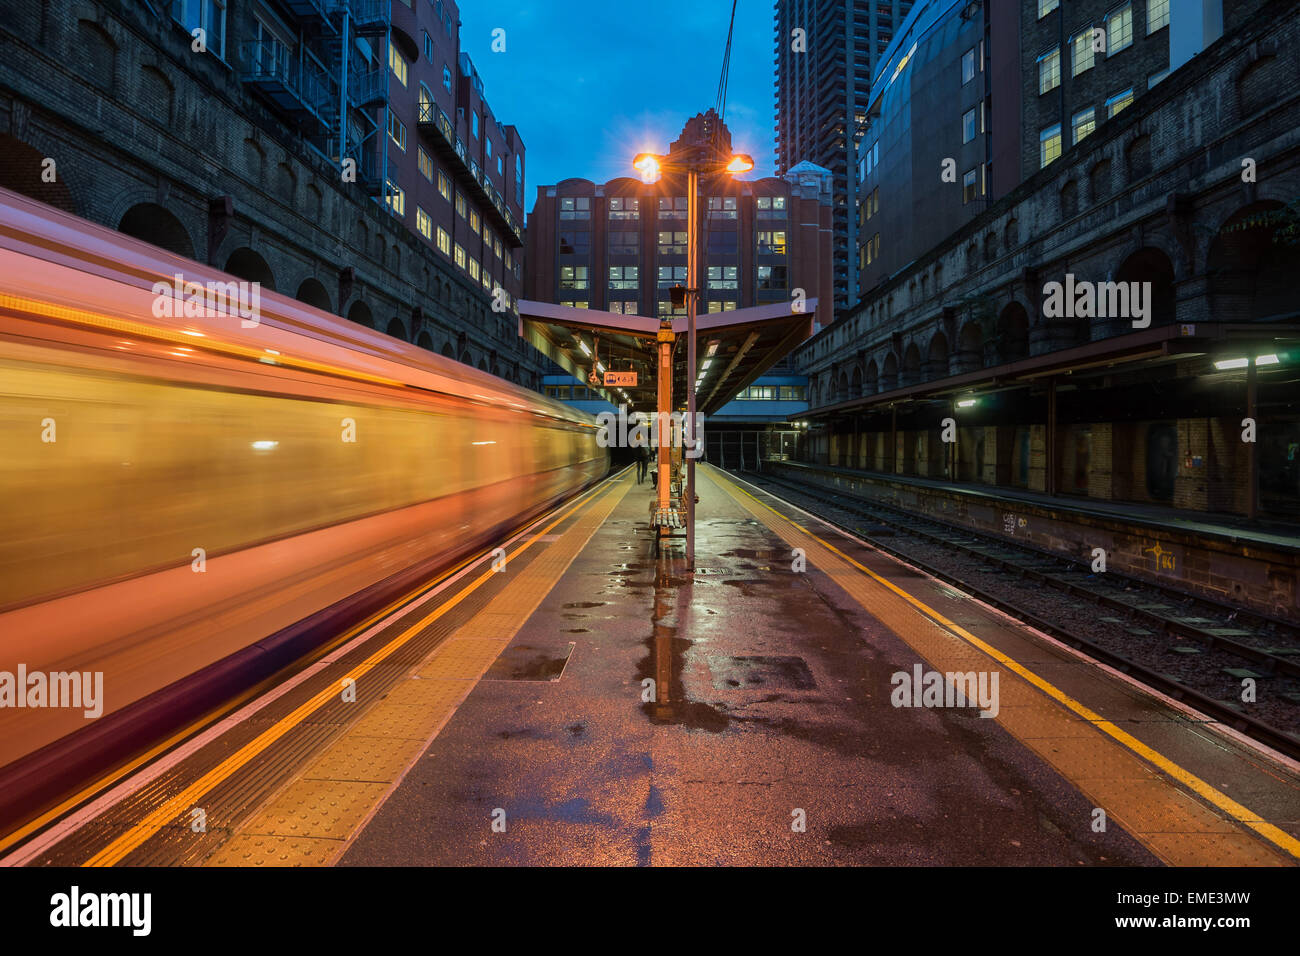 Barbican station, captured late 2014 with a train leaving. - Stock Image